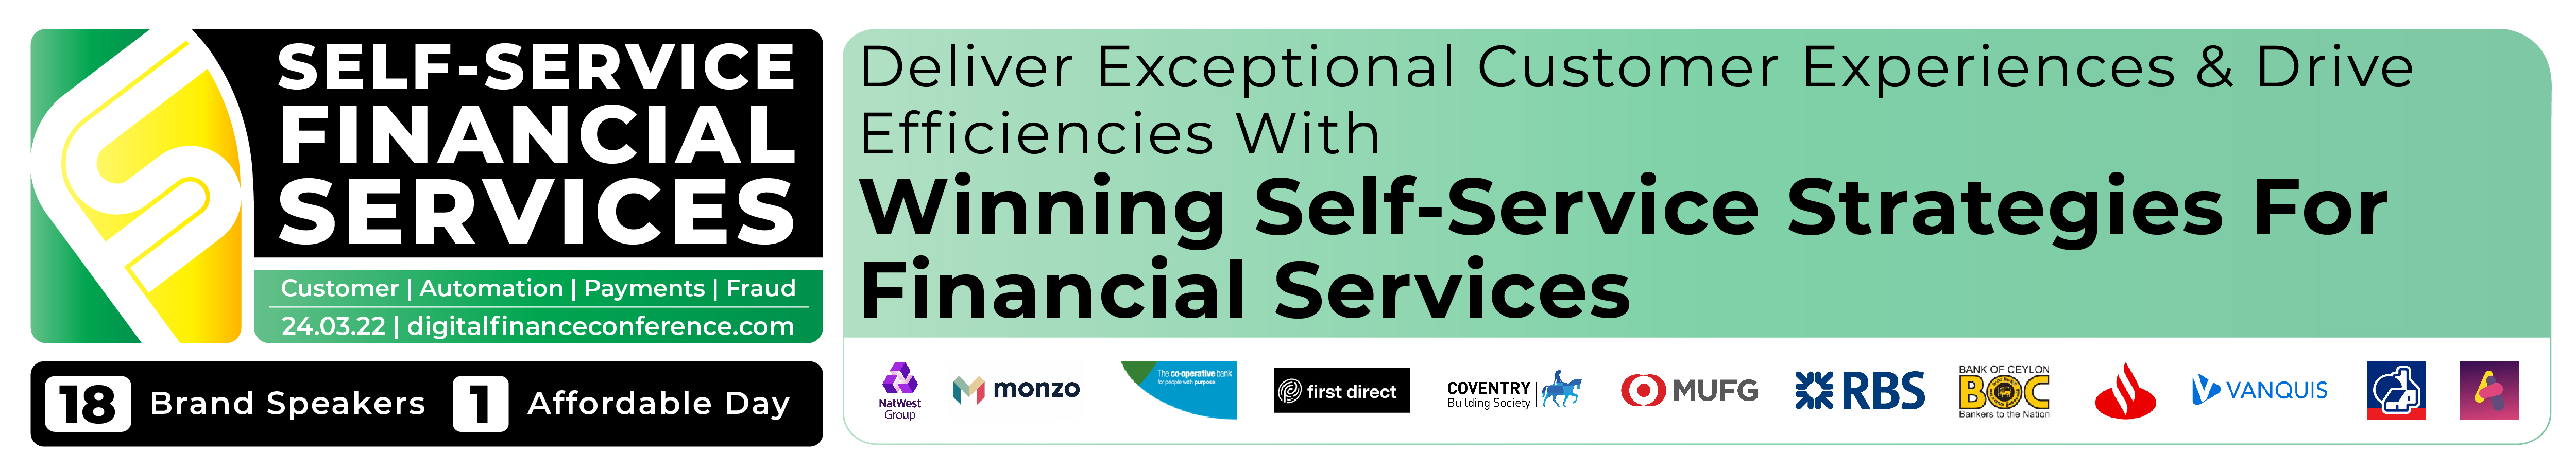 Digital Transformation & Innovation In Financial Services Conference